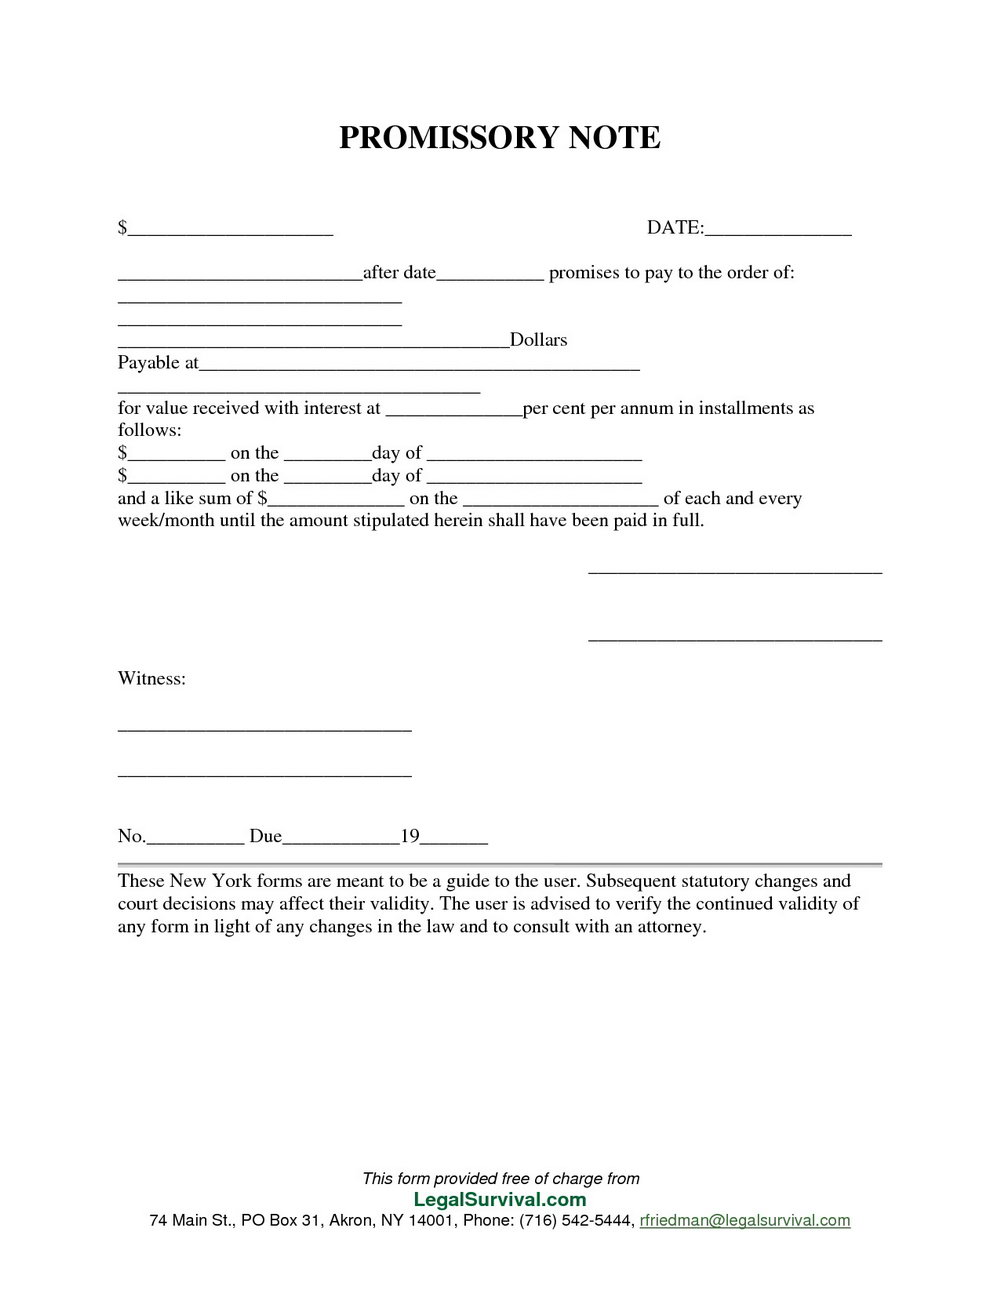 Promissory Note Forms Free Download